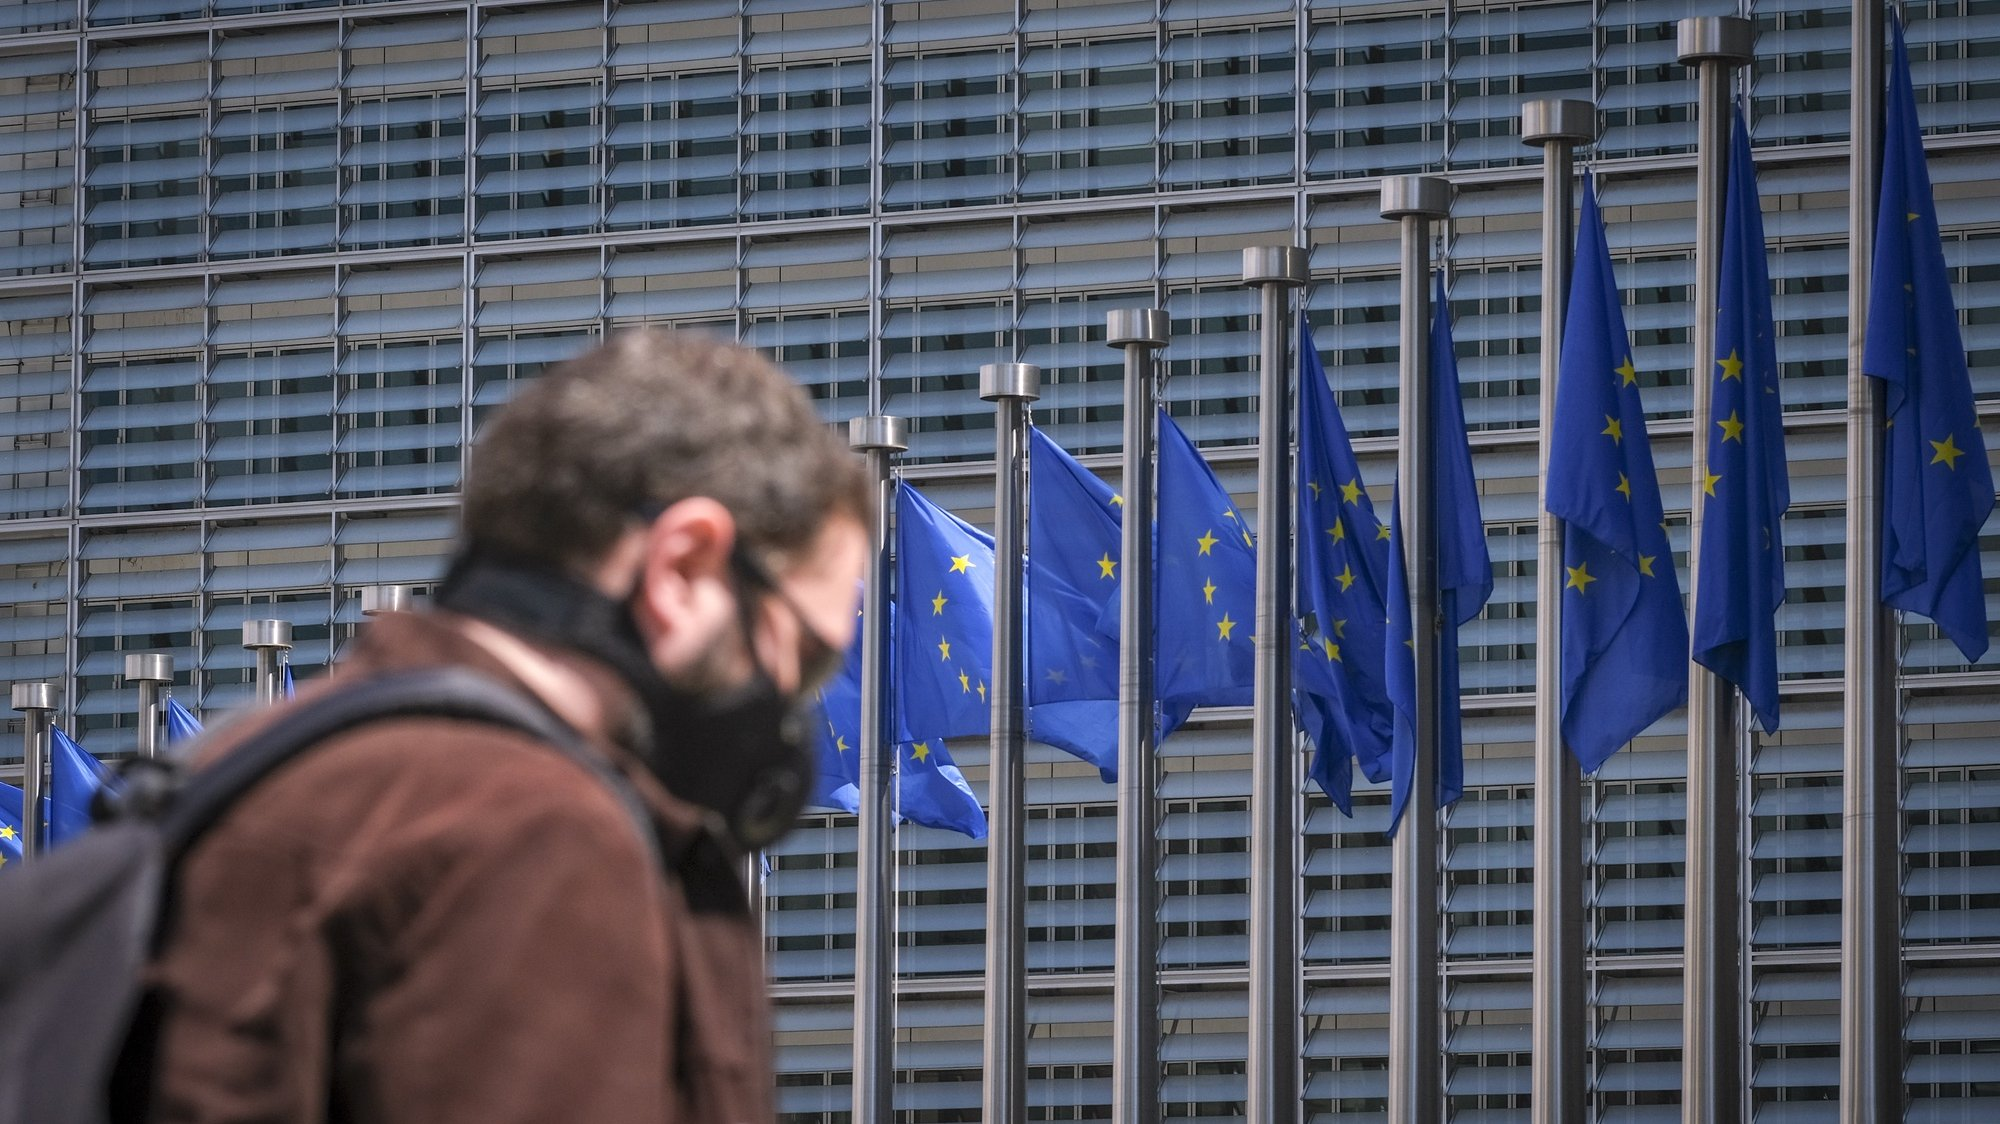 epa08443018 A man wearing a face mask walks in front of the European Commission flags at the Berlaymont building headquarters in Brussels, Belgium, 25 May 2020. Countries around the world are gradually easing COVID-19 lockdown restrictions in an effort to restart the economy and help people in their daily routines.  EPA/OLIVIER HOSLET